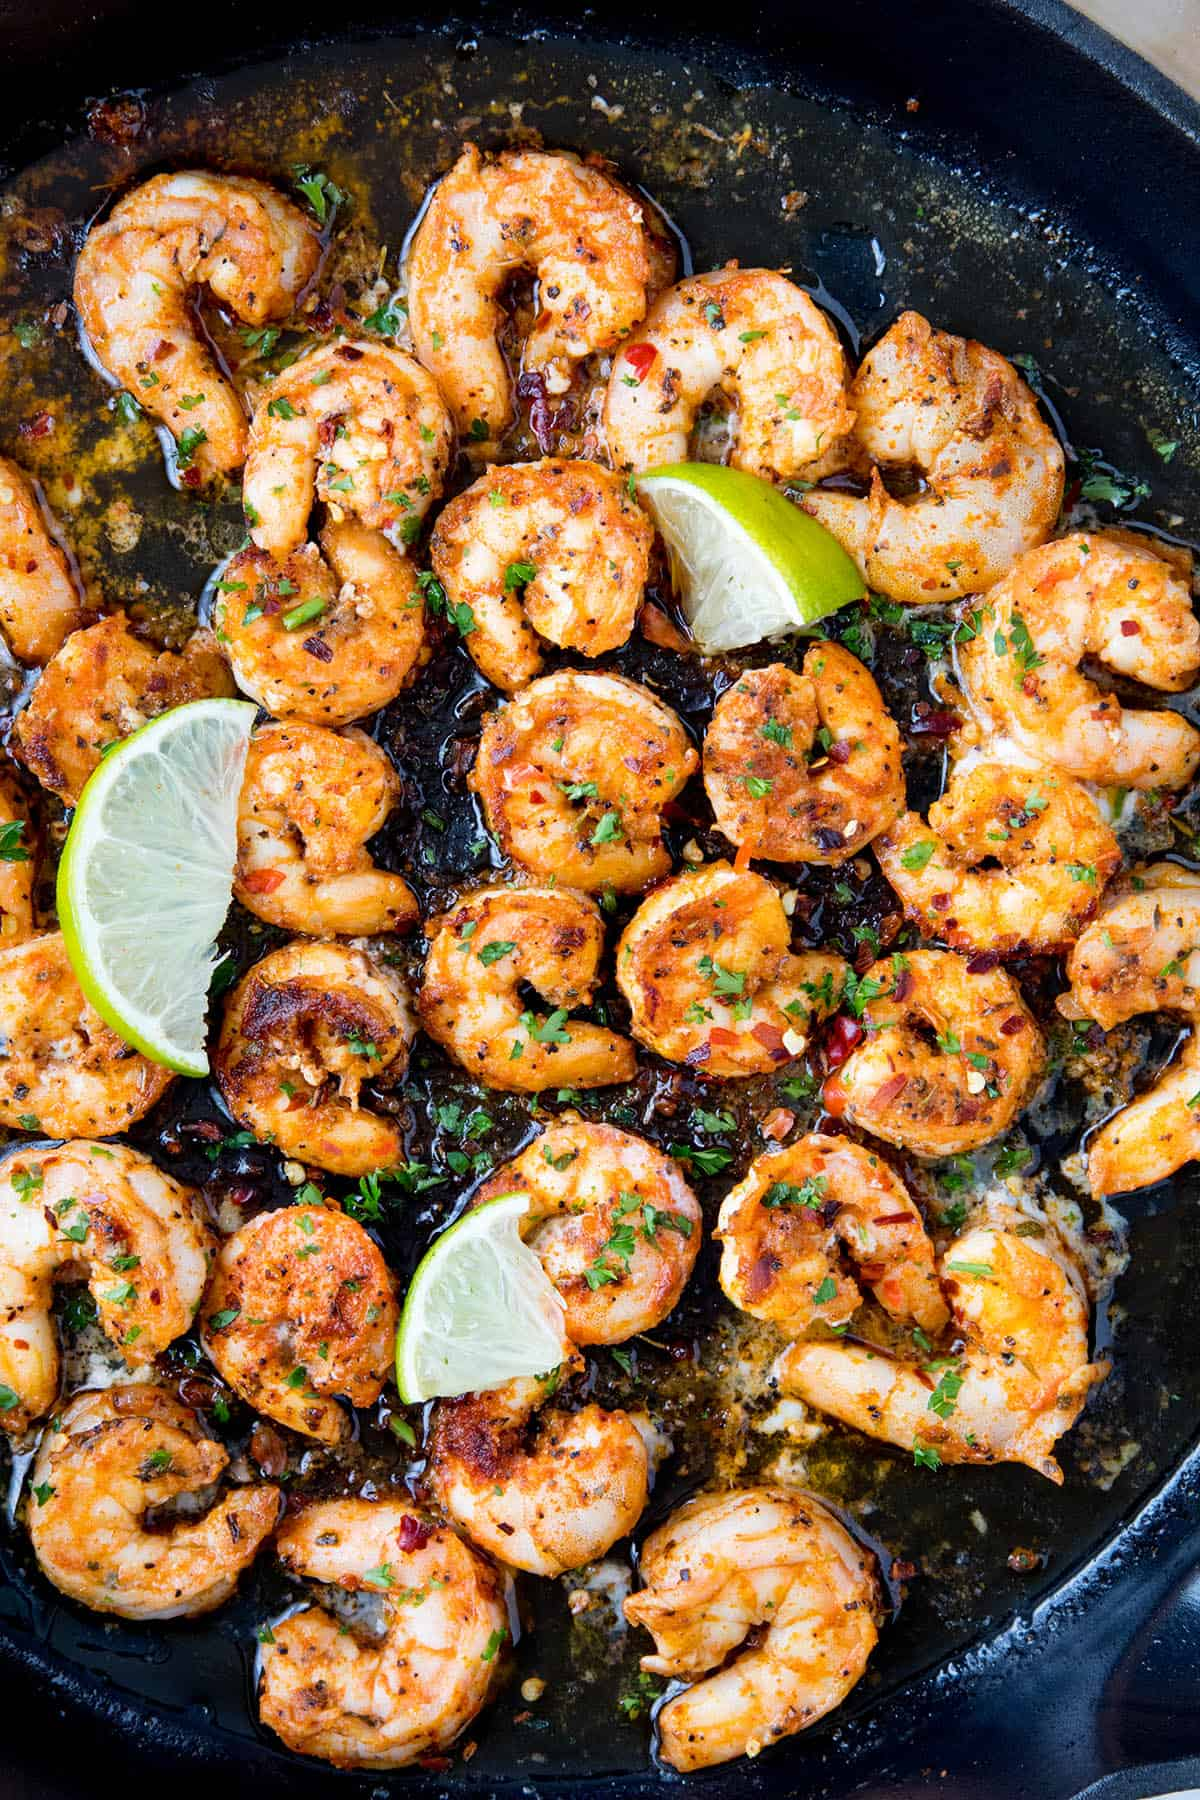 Blackened Shrimp in a pan